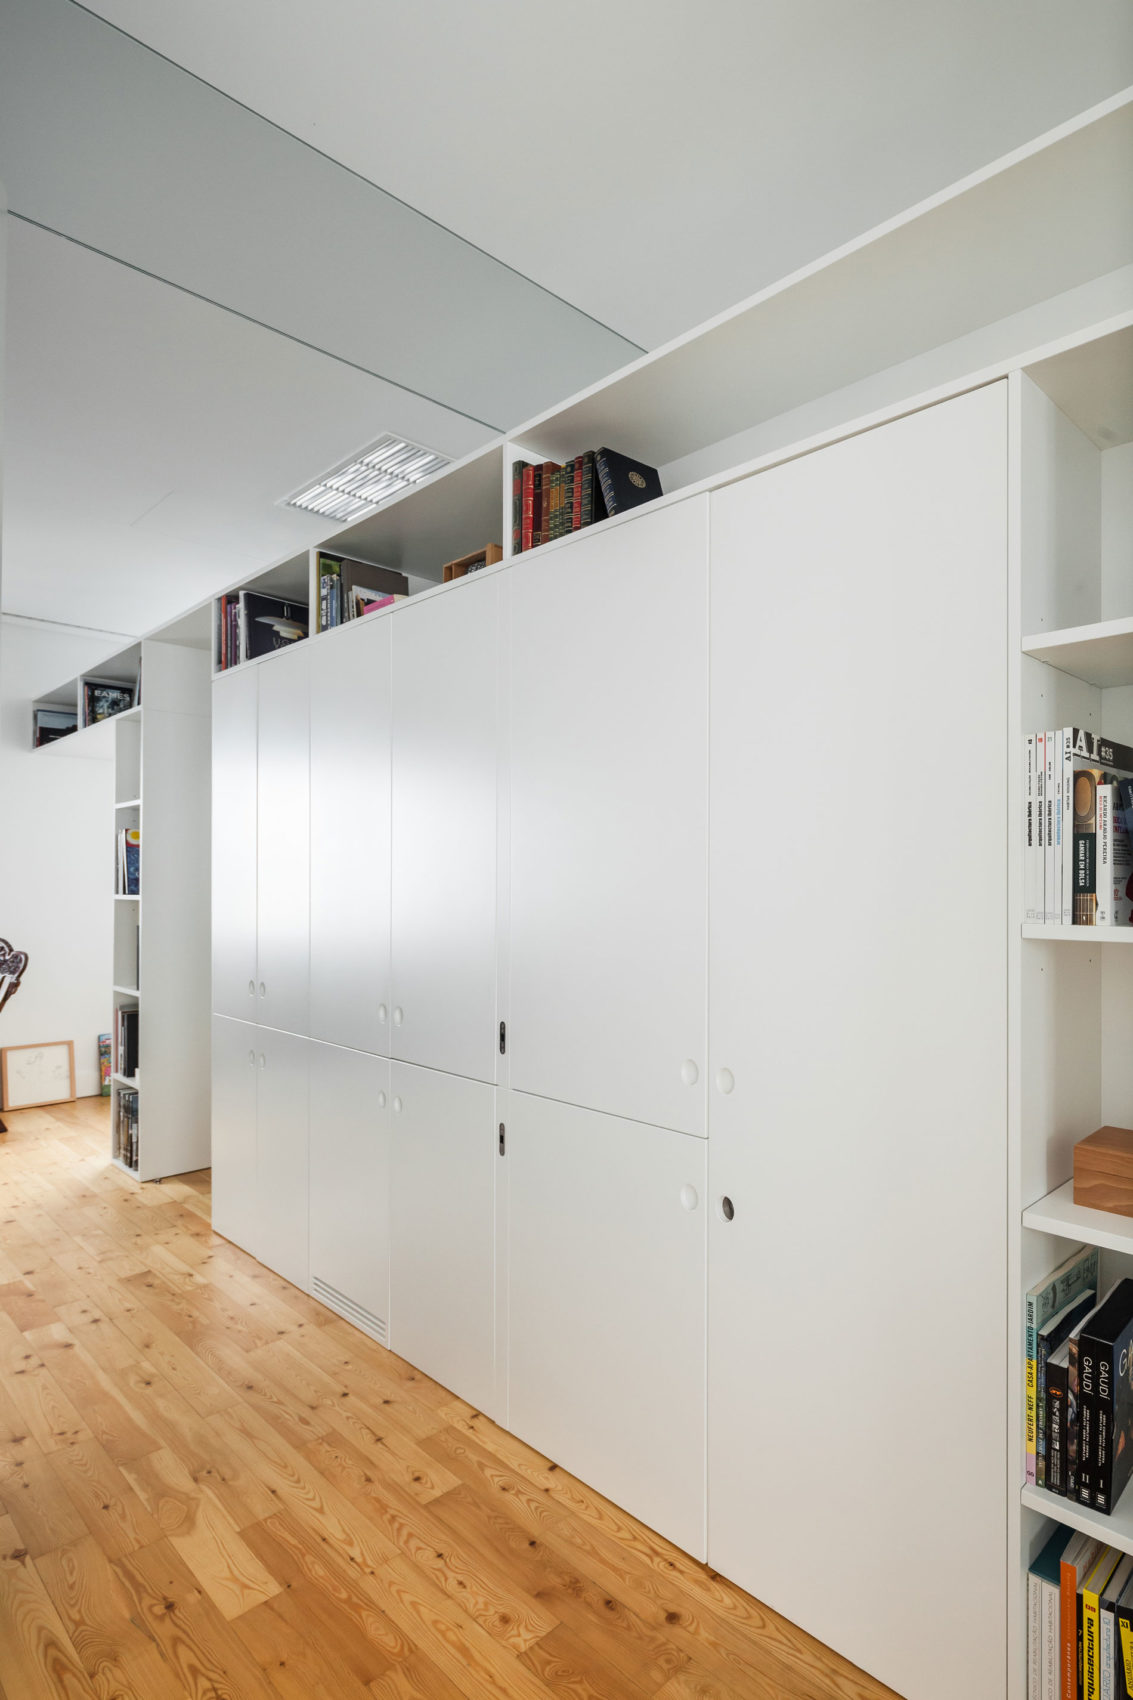 Apartment B9 by Filipe Melo Oliveira (10)